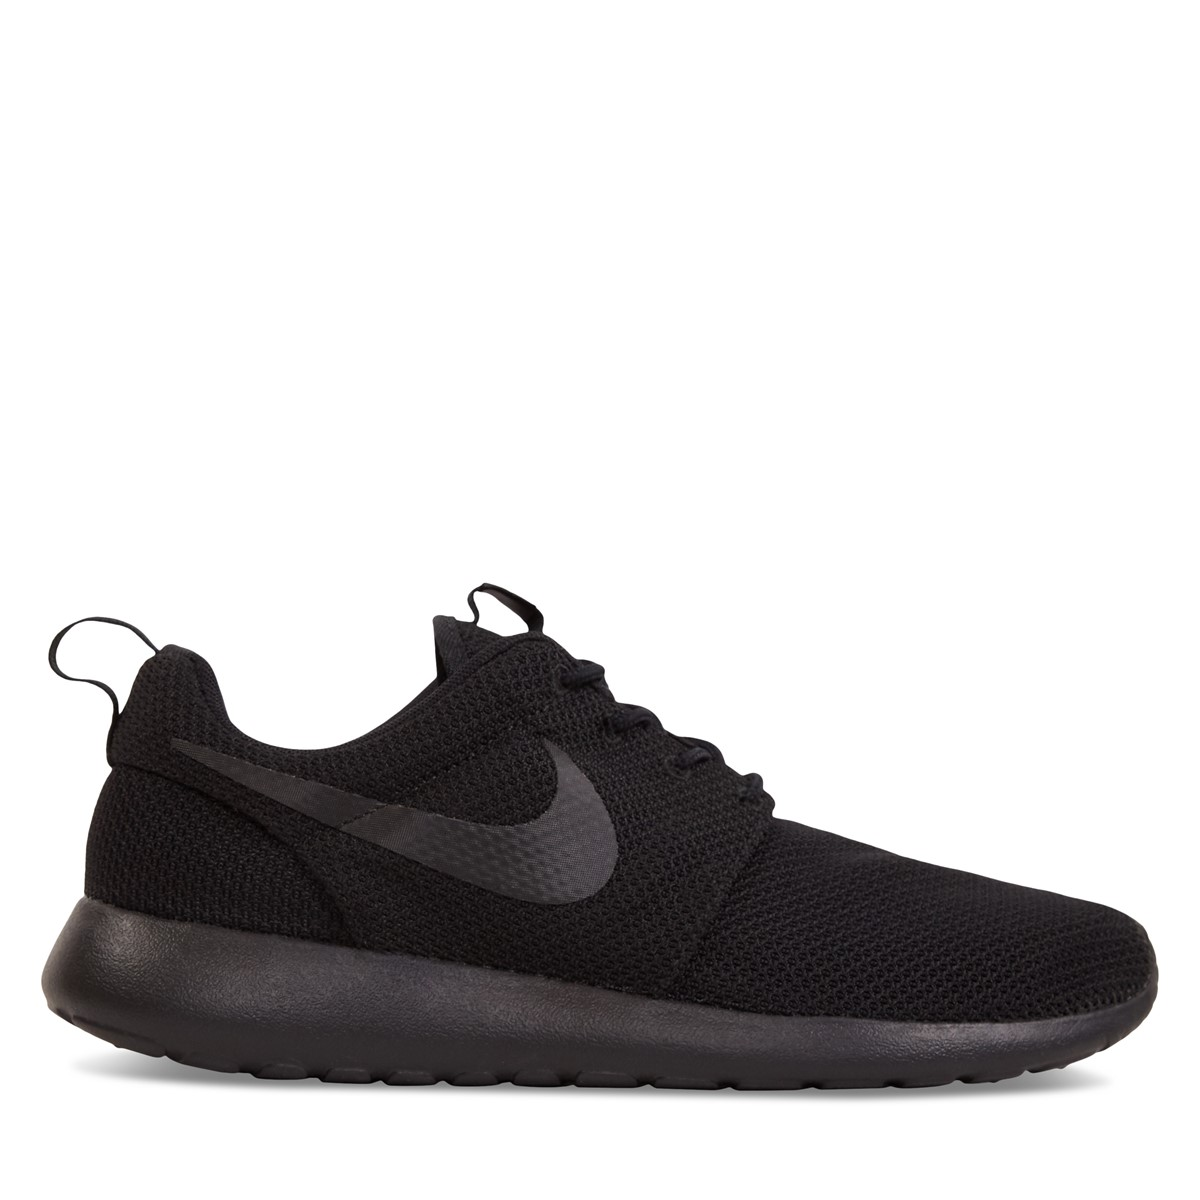 Men's Roshe One Black Sneaker